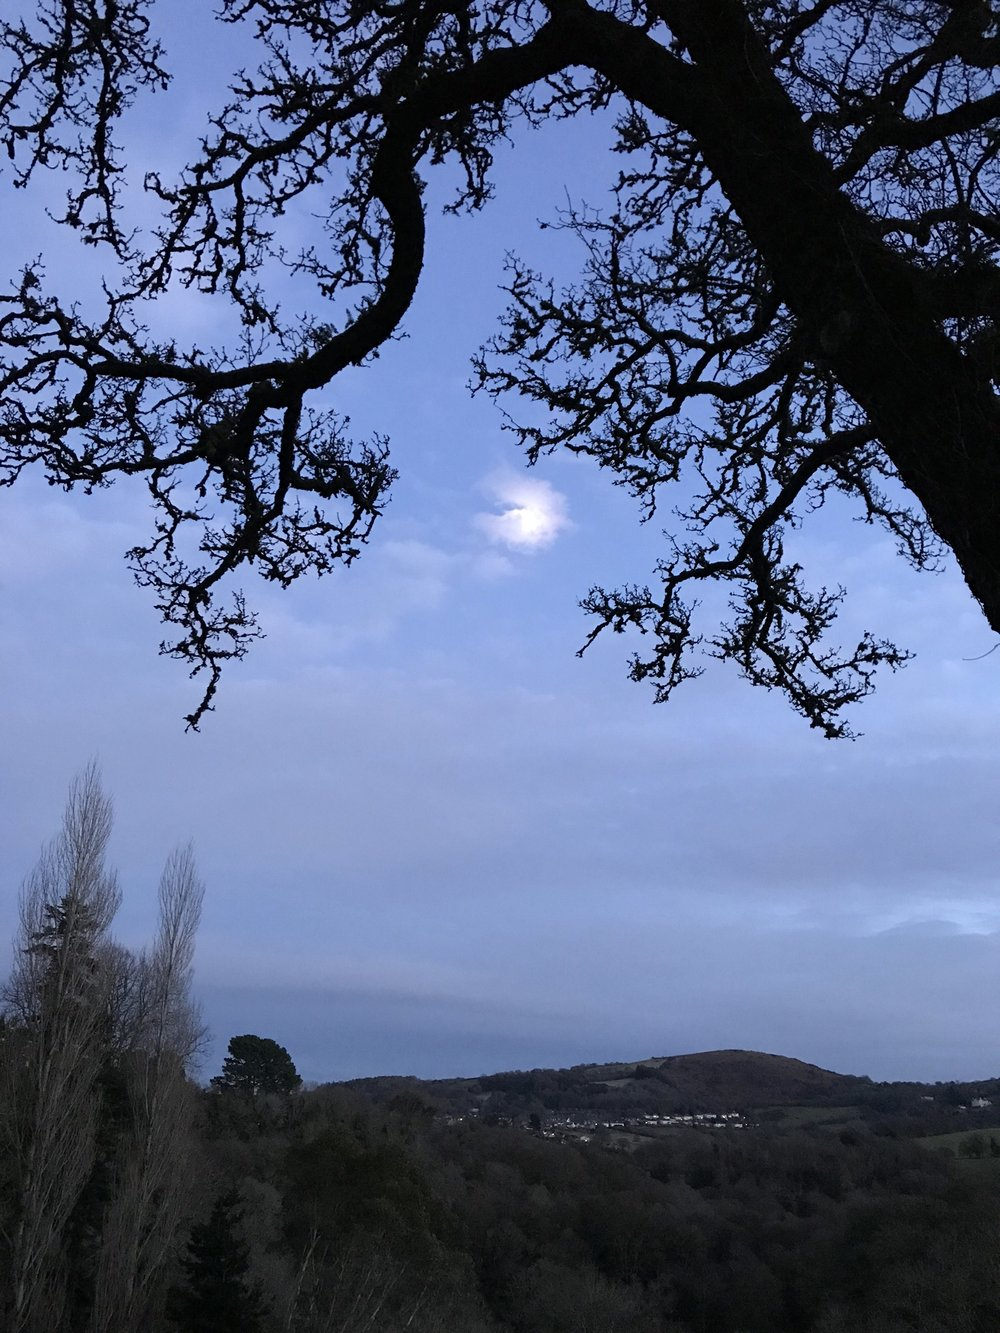 Moon appearing through the trees as the old year fades